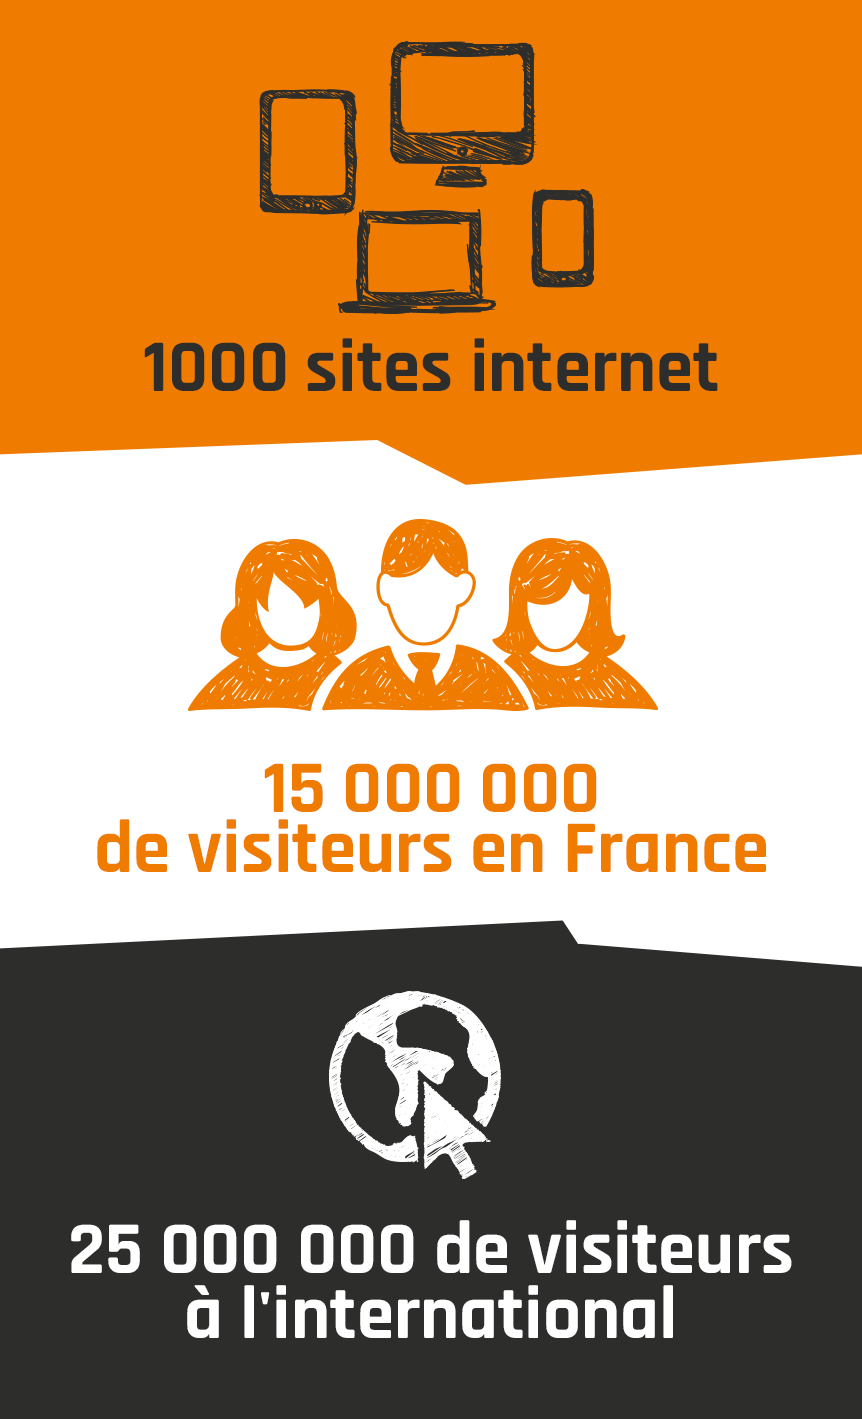 25 000 000 de visiteurs à l'international